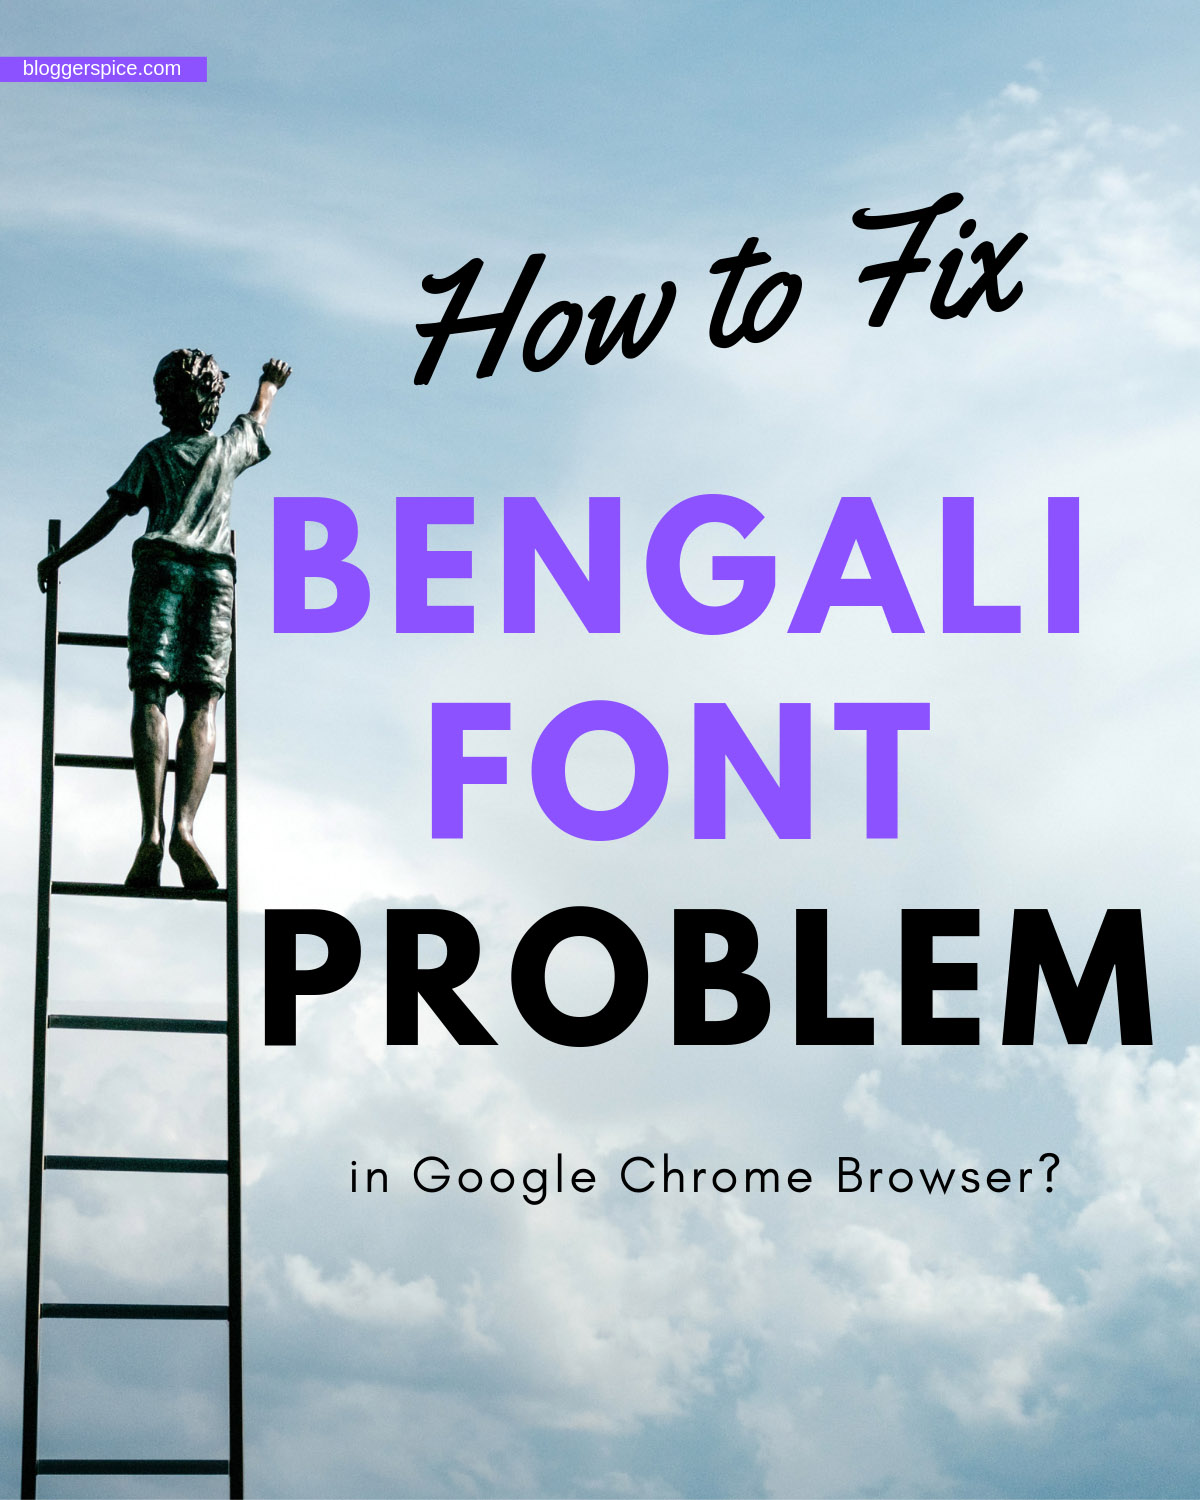 How to Fix Bengali Font Problem in Google Chrome Browser?